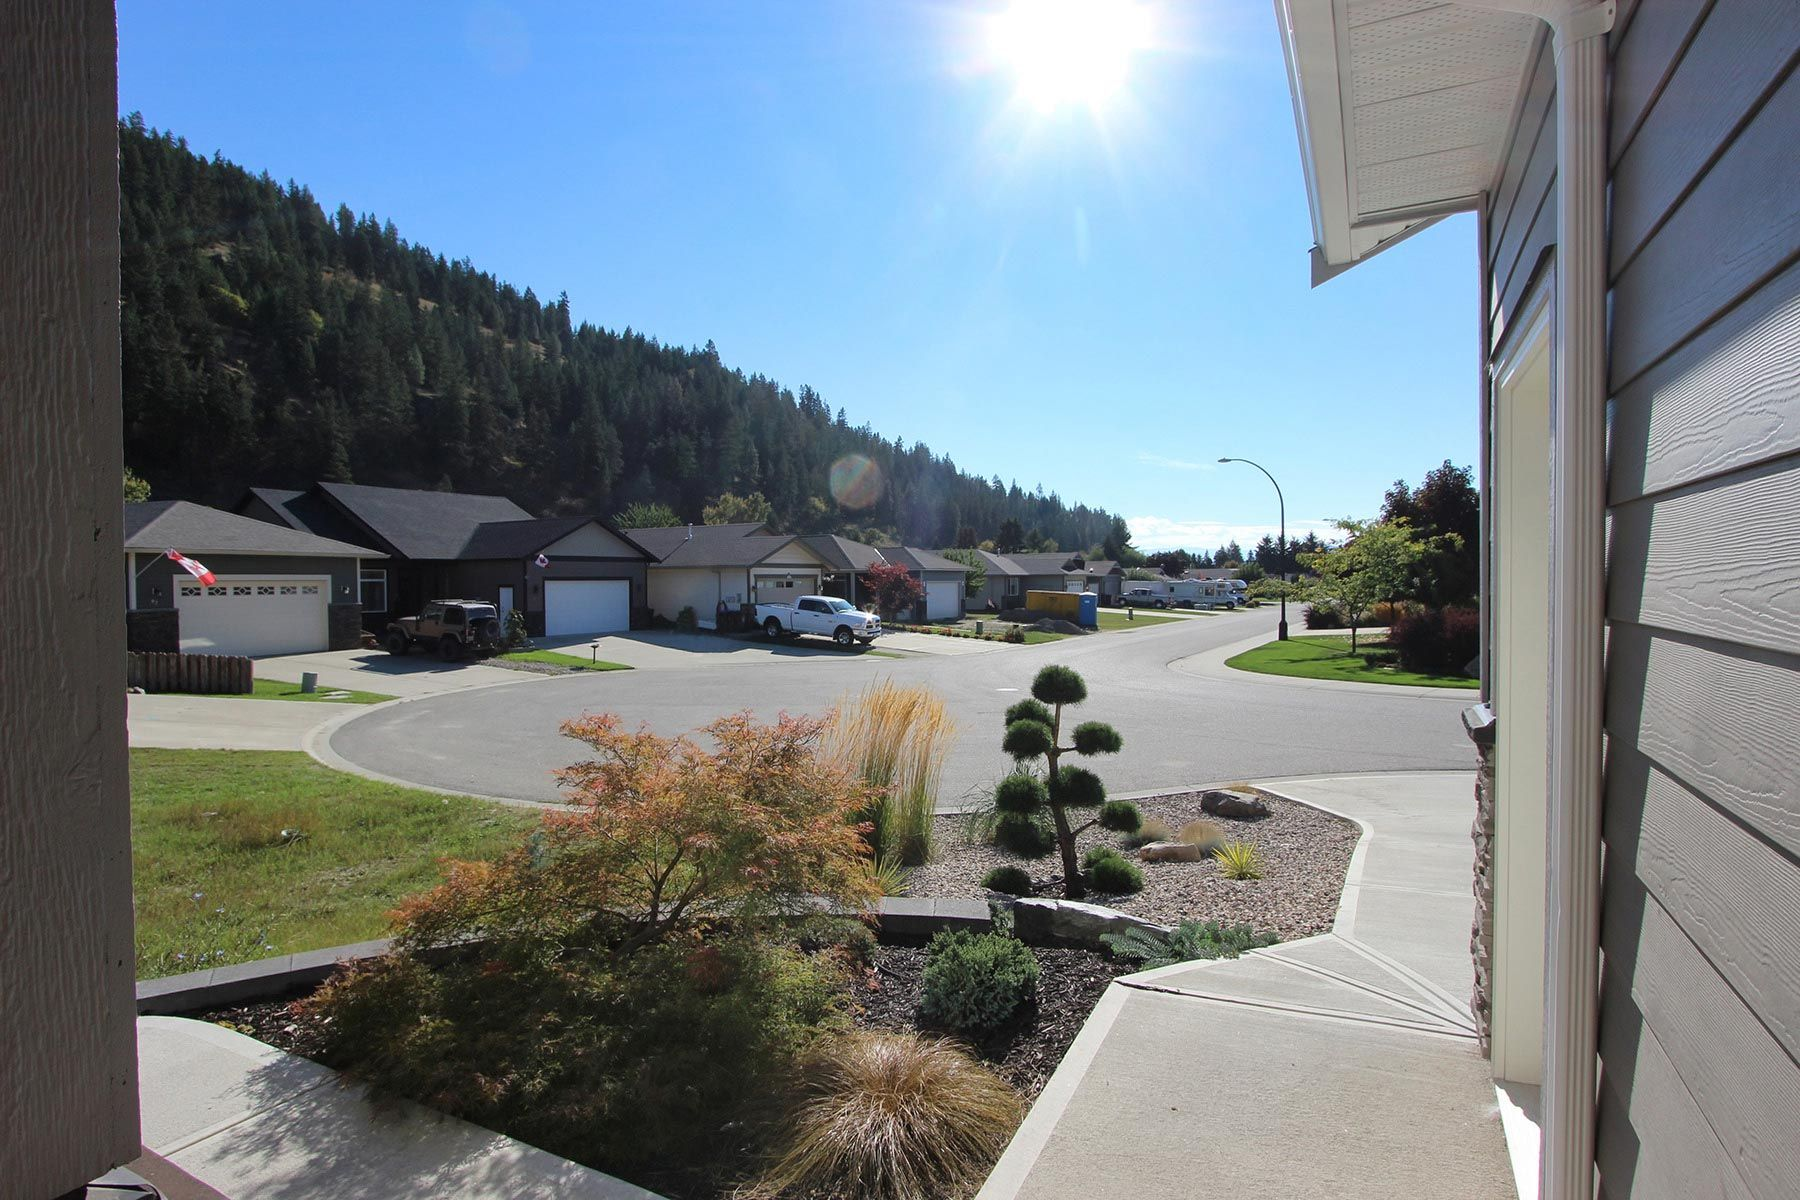 Photo 8: Photos: 199 Ash Drive in Chase: House for sale : MLS®# 10223046